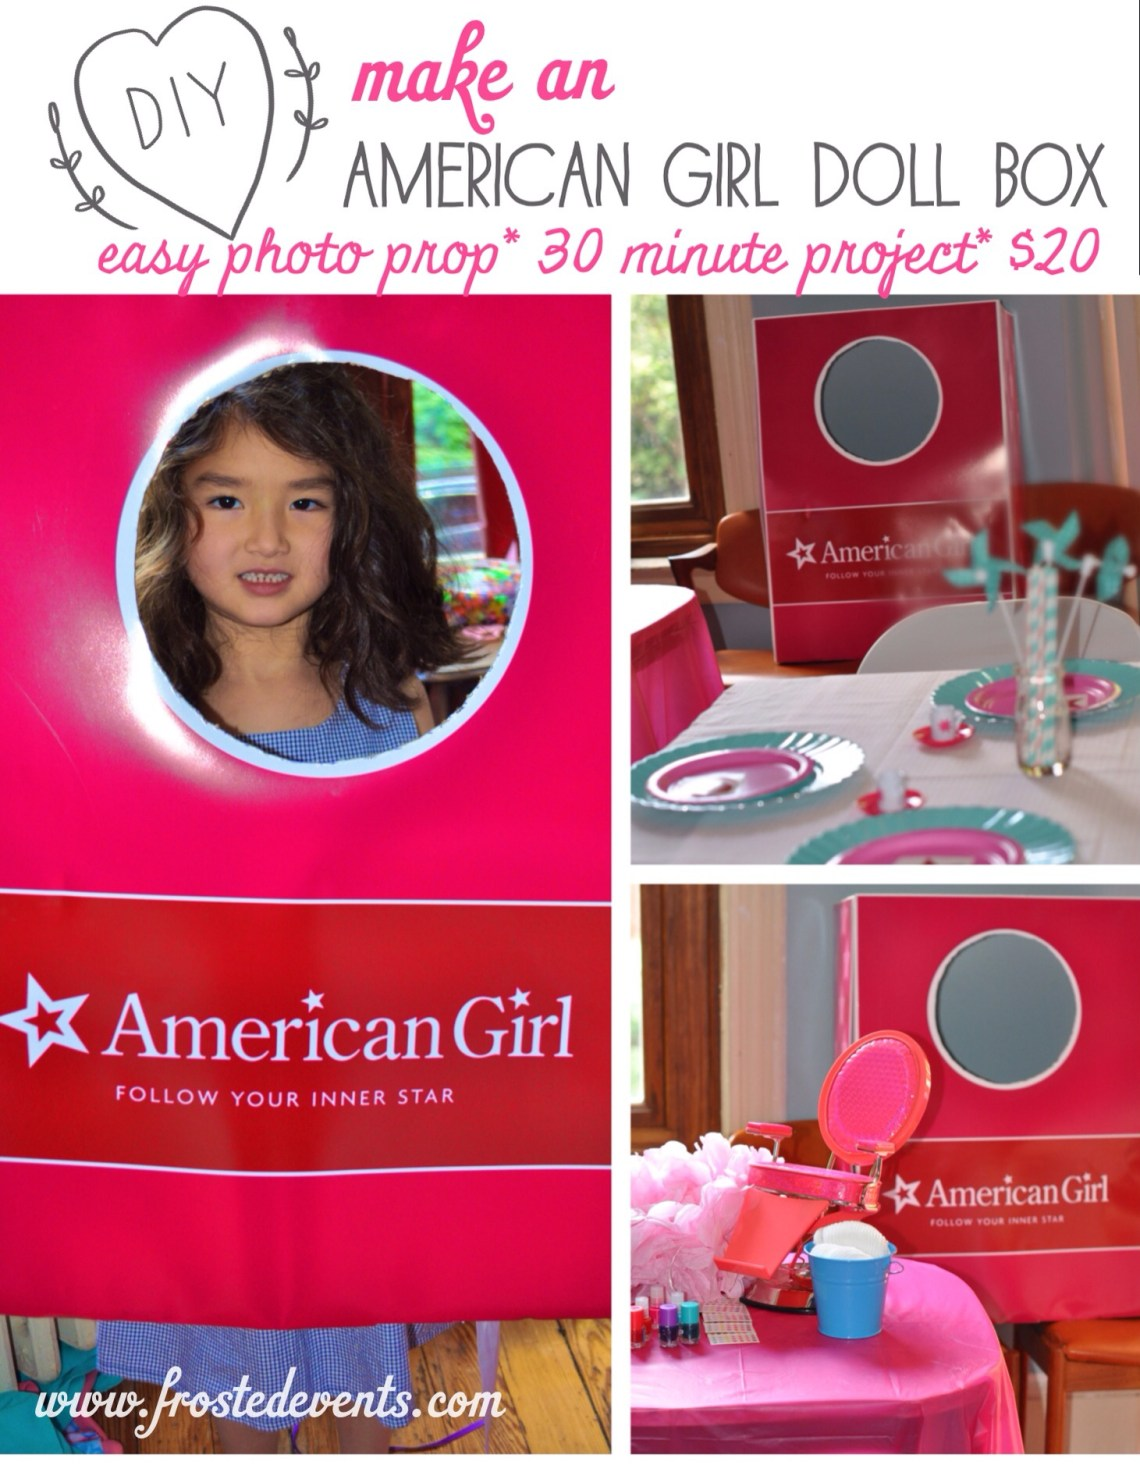 American Girl Games + American Girl Doll Box Photo Prop DIY Make www.frostedevents.com